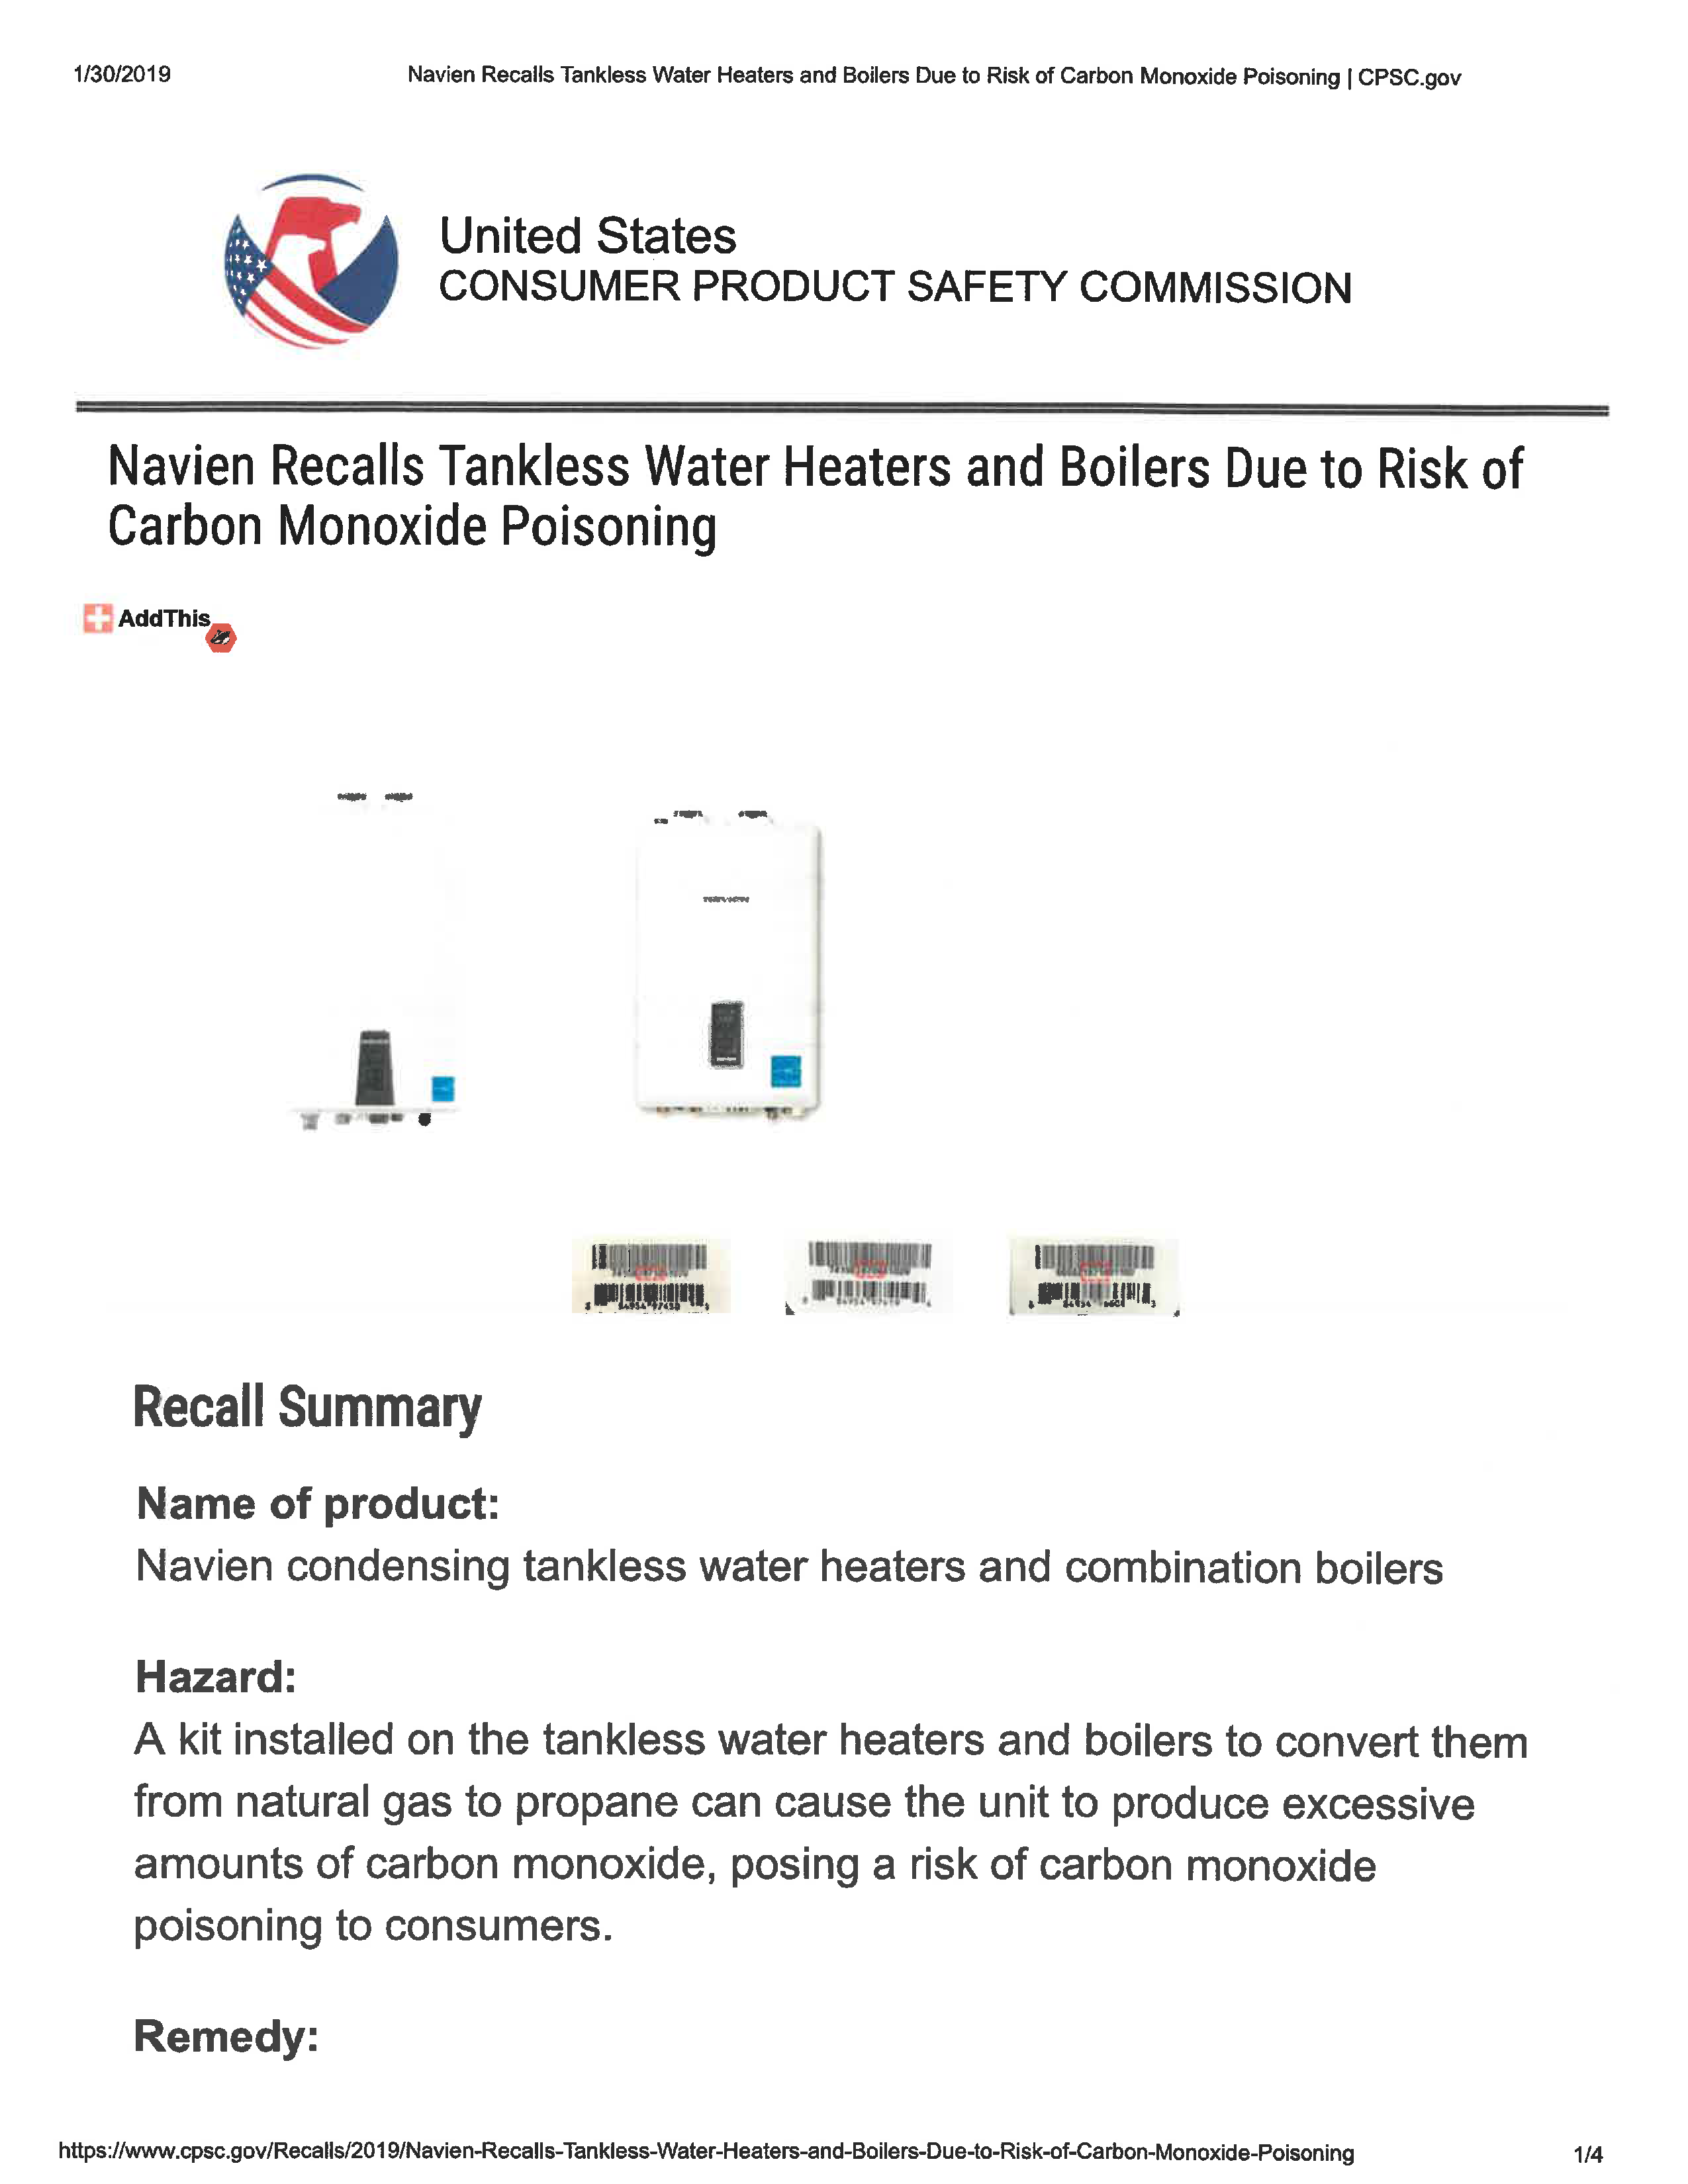 Navien Tankless Water Heaters & Boilers RECALL